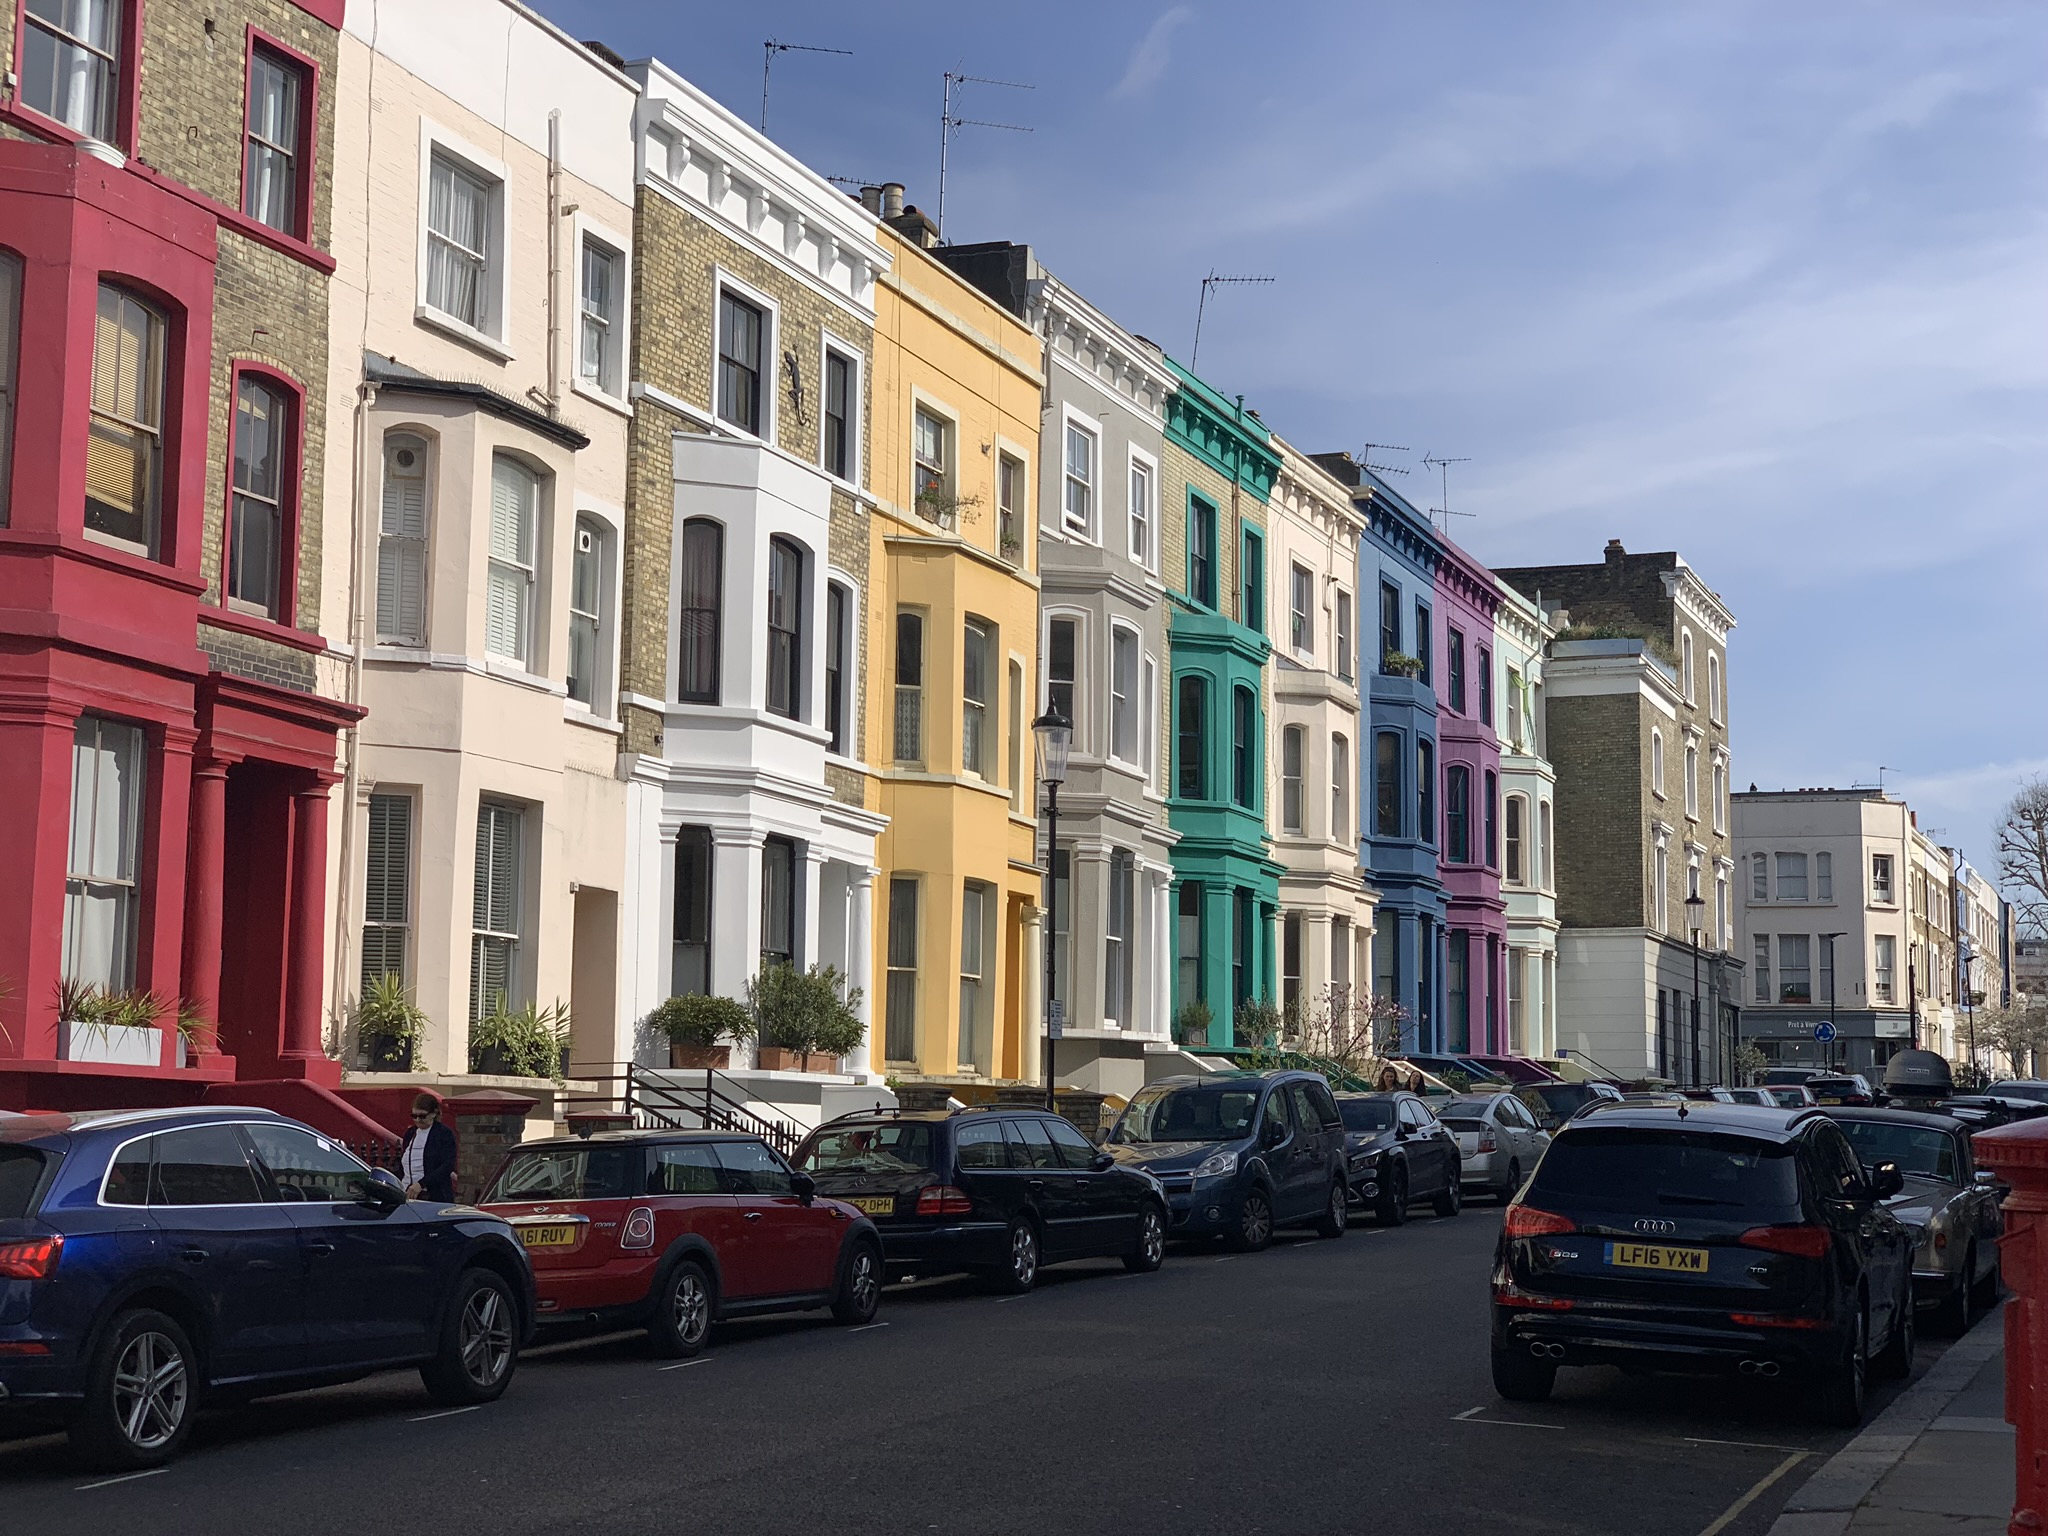 Colourful streets of Notting Hill